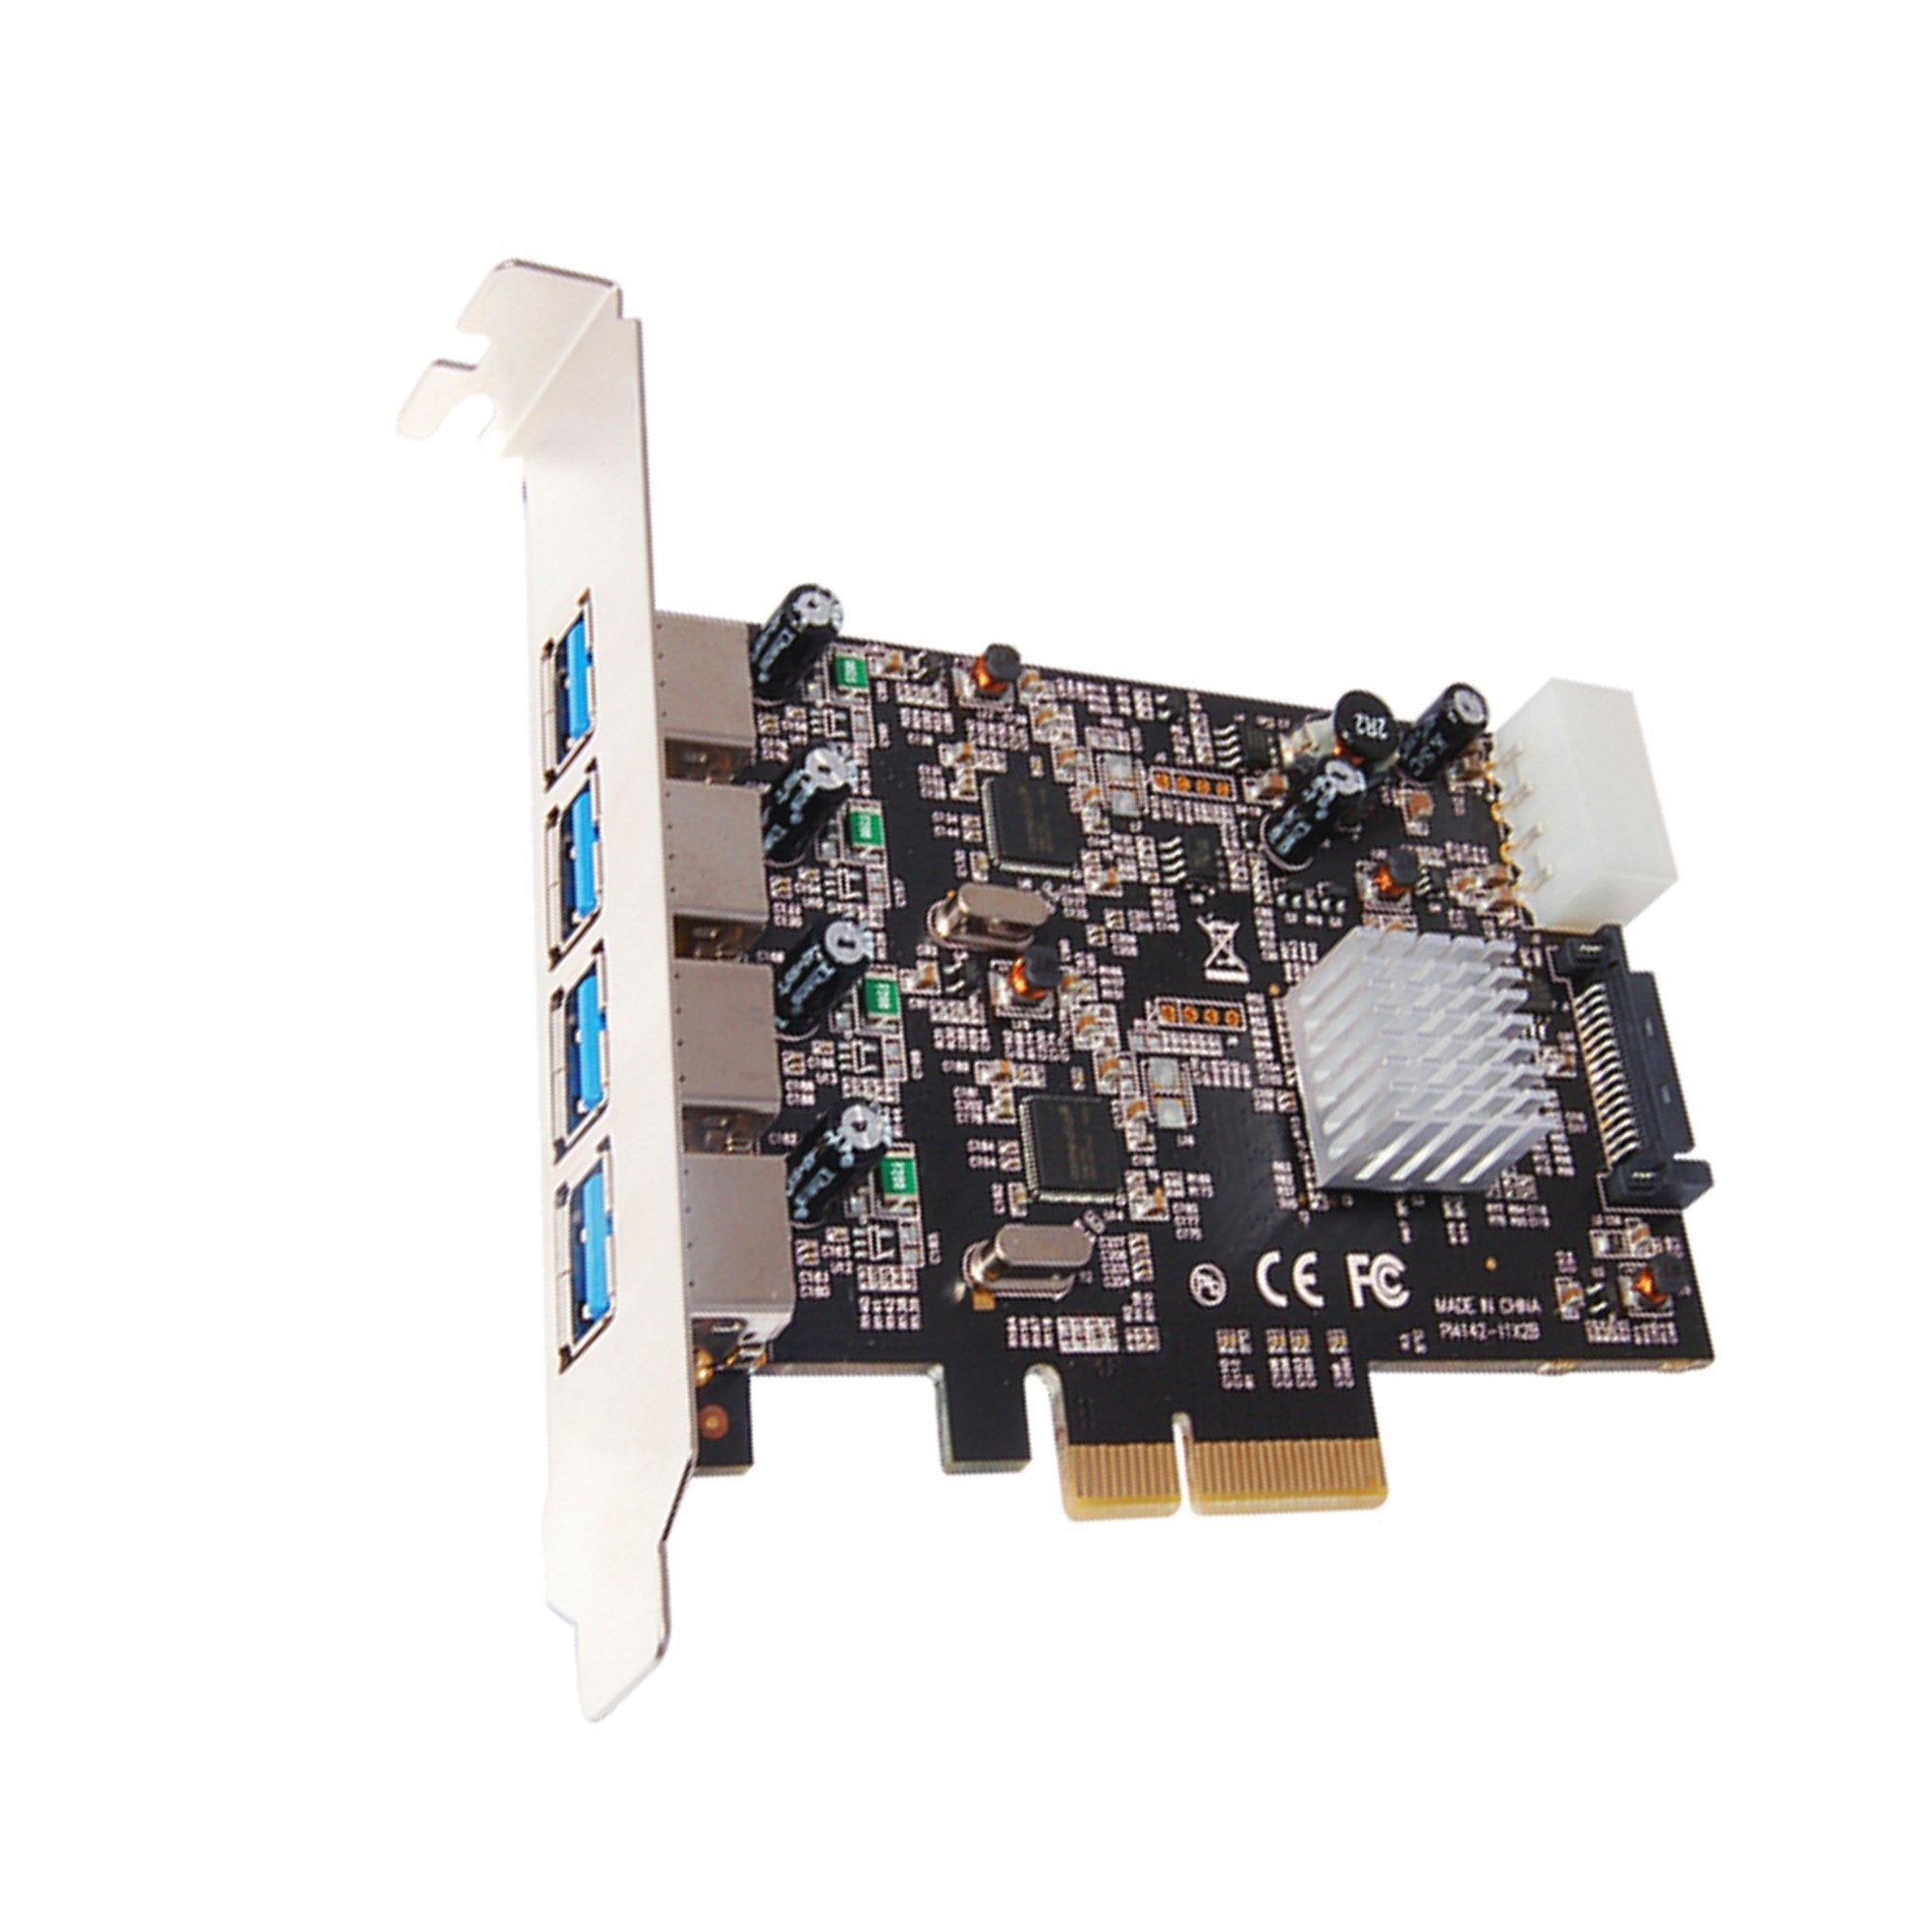 Vantec 4-Port Dedicated 10Gbps USB 3.1 Gen 2 PCIe Host Card with Dual Controller For PCIe x4/x8/x16 slot Black/Silver Black/Silver (UGT-PCE470-2C) by Vantec (Image #3)